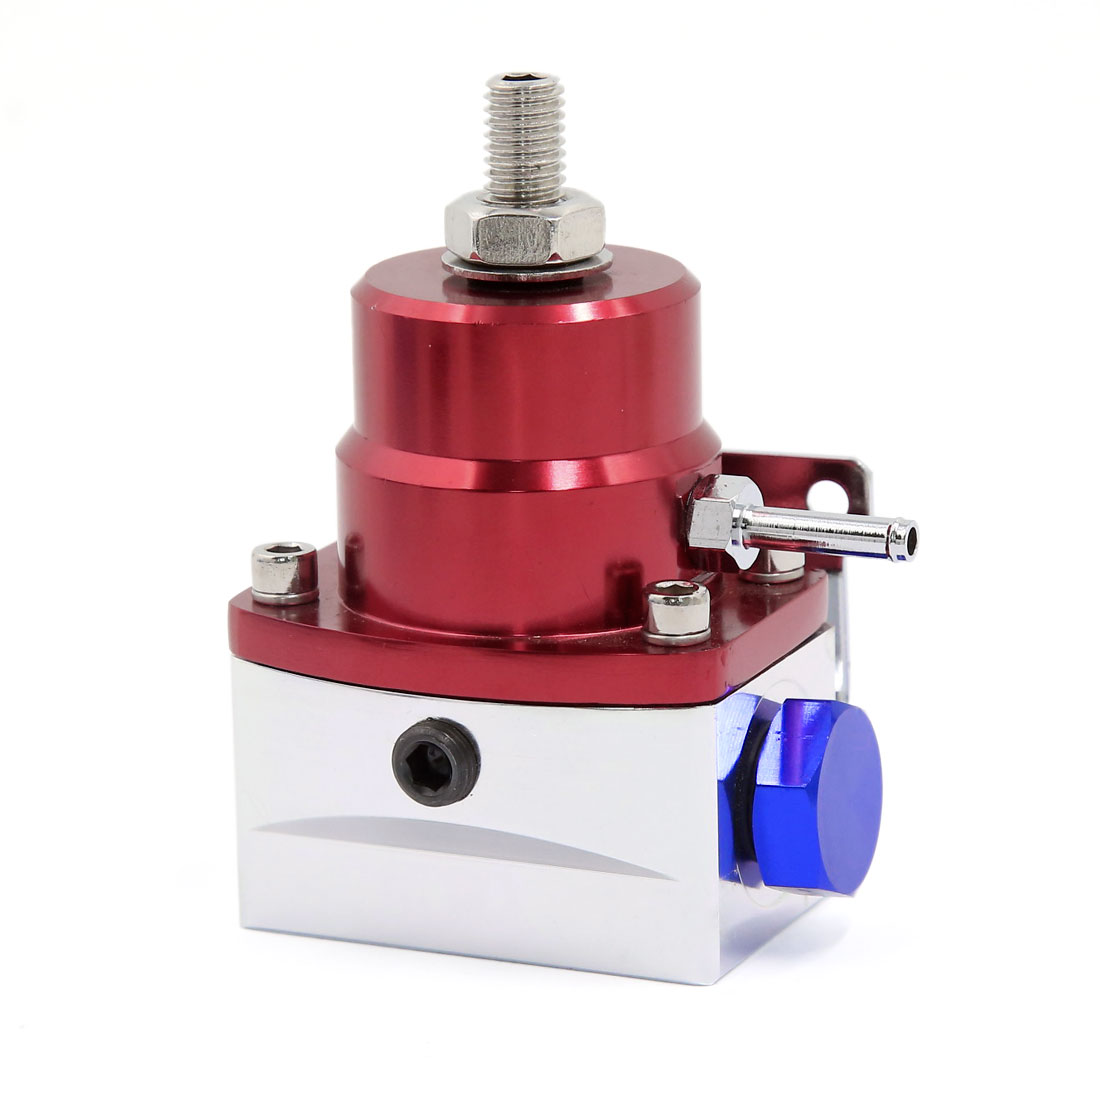 Universal 6AN Port Adjustable Injected Bypass Fuel Pressure Regulator Red Silver Tone